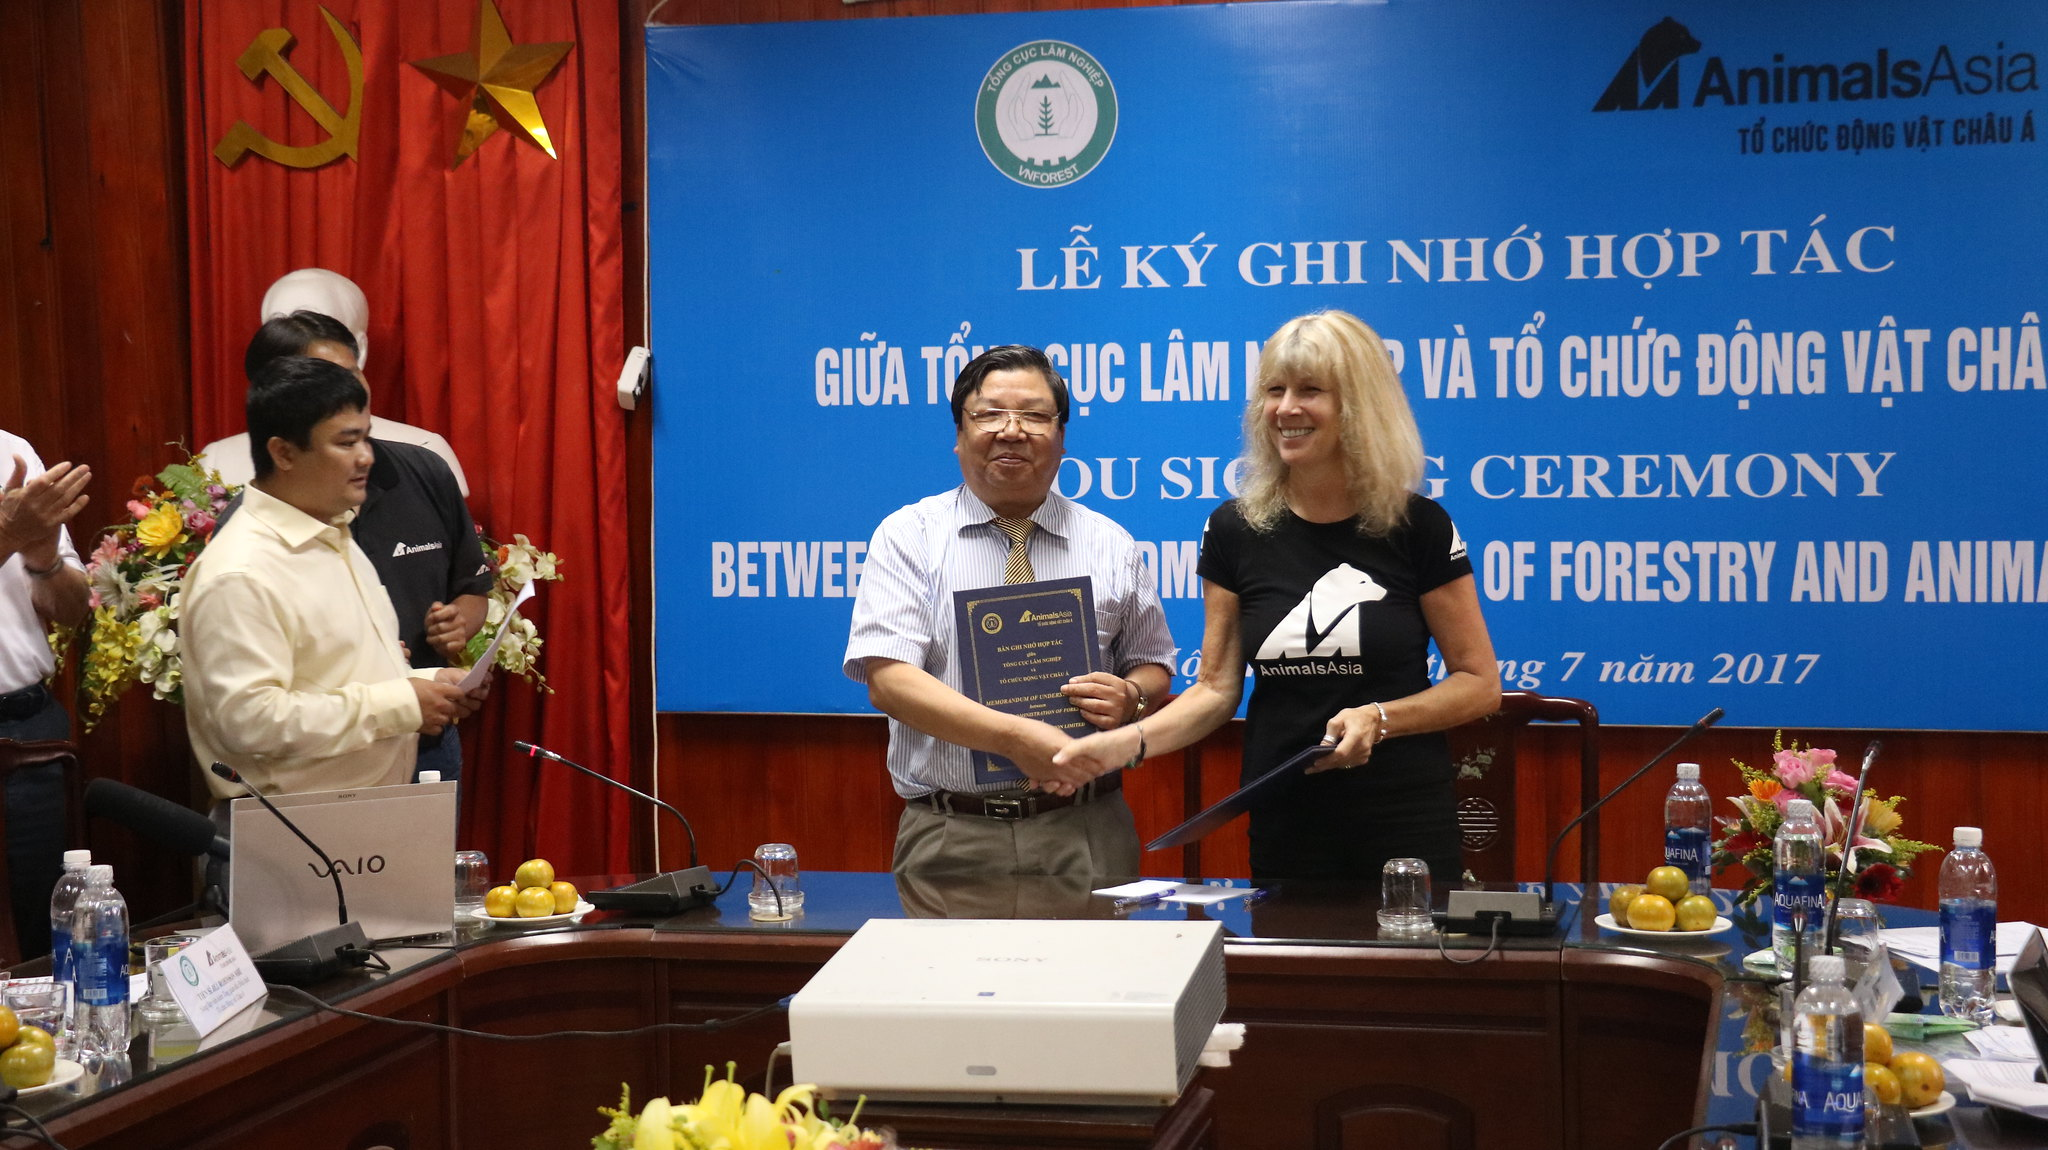 The historic handshake between Animals Asia and Vietnam Administration of Forest